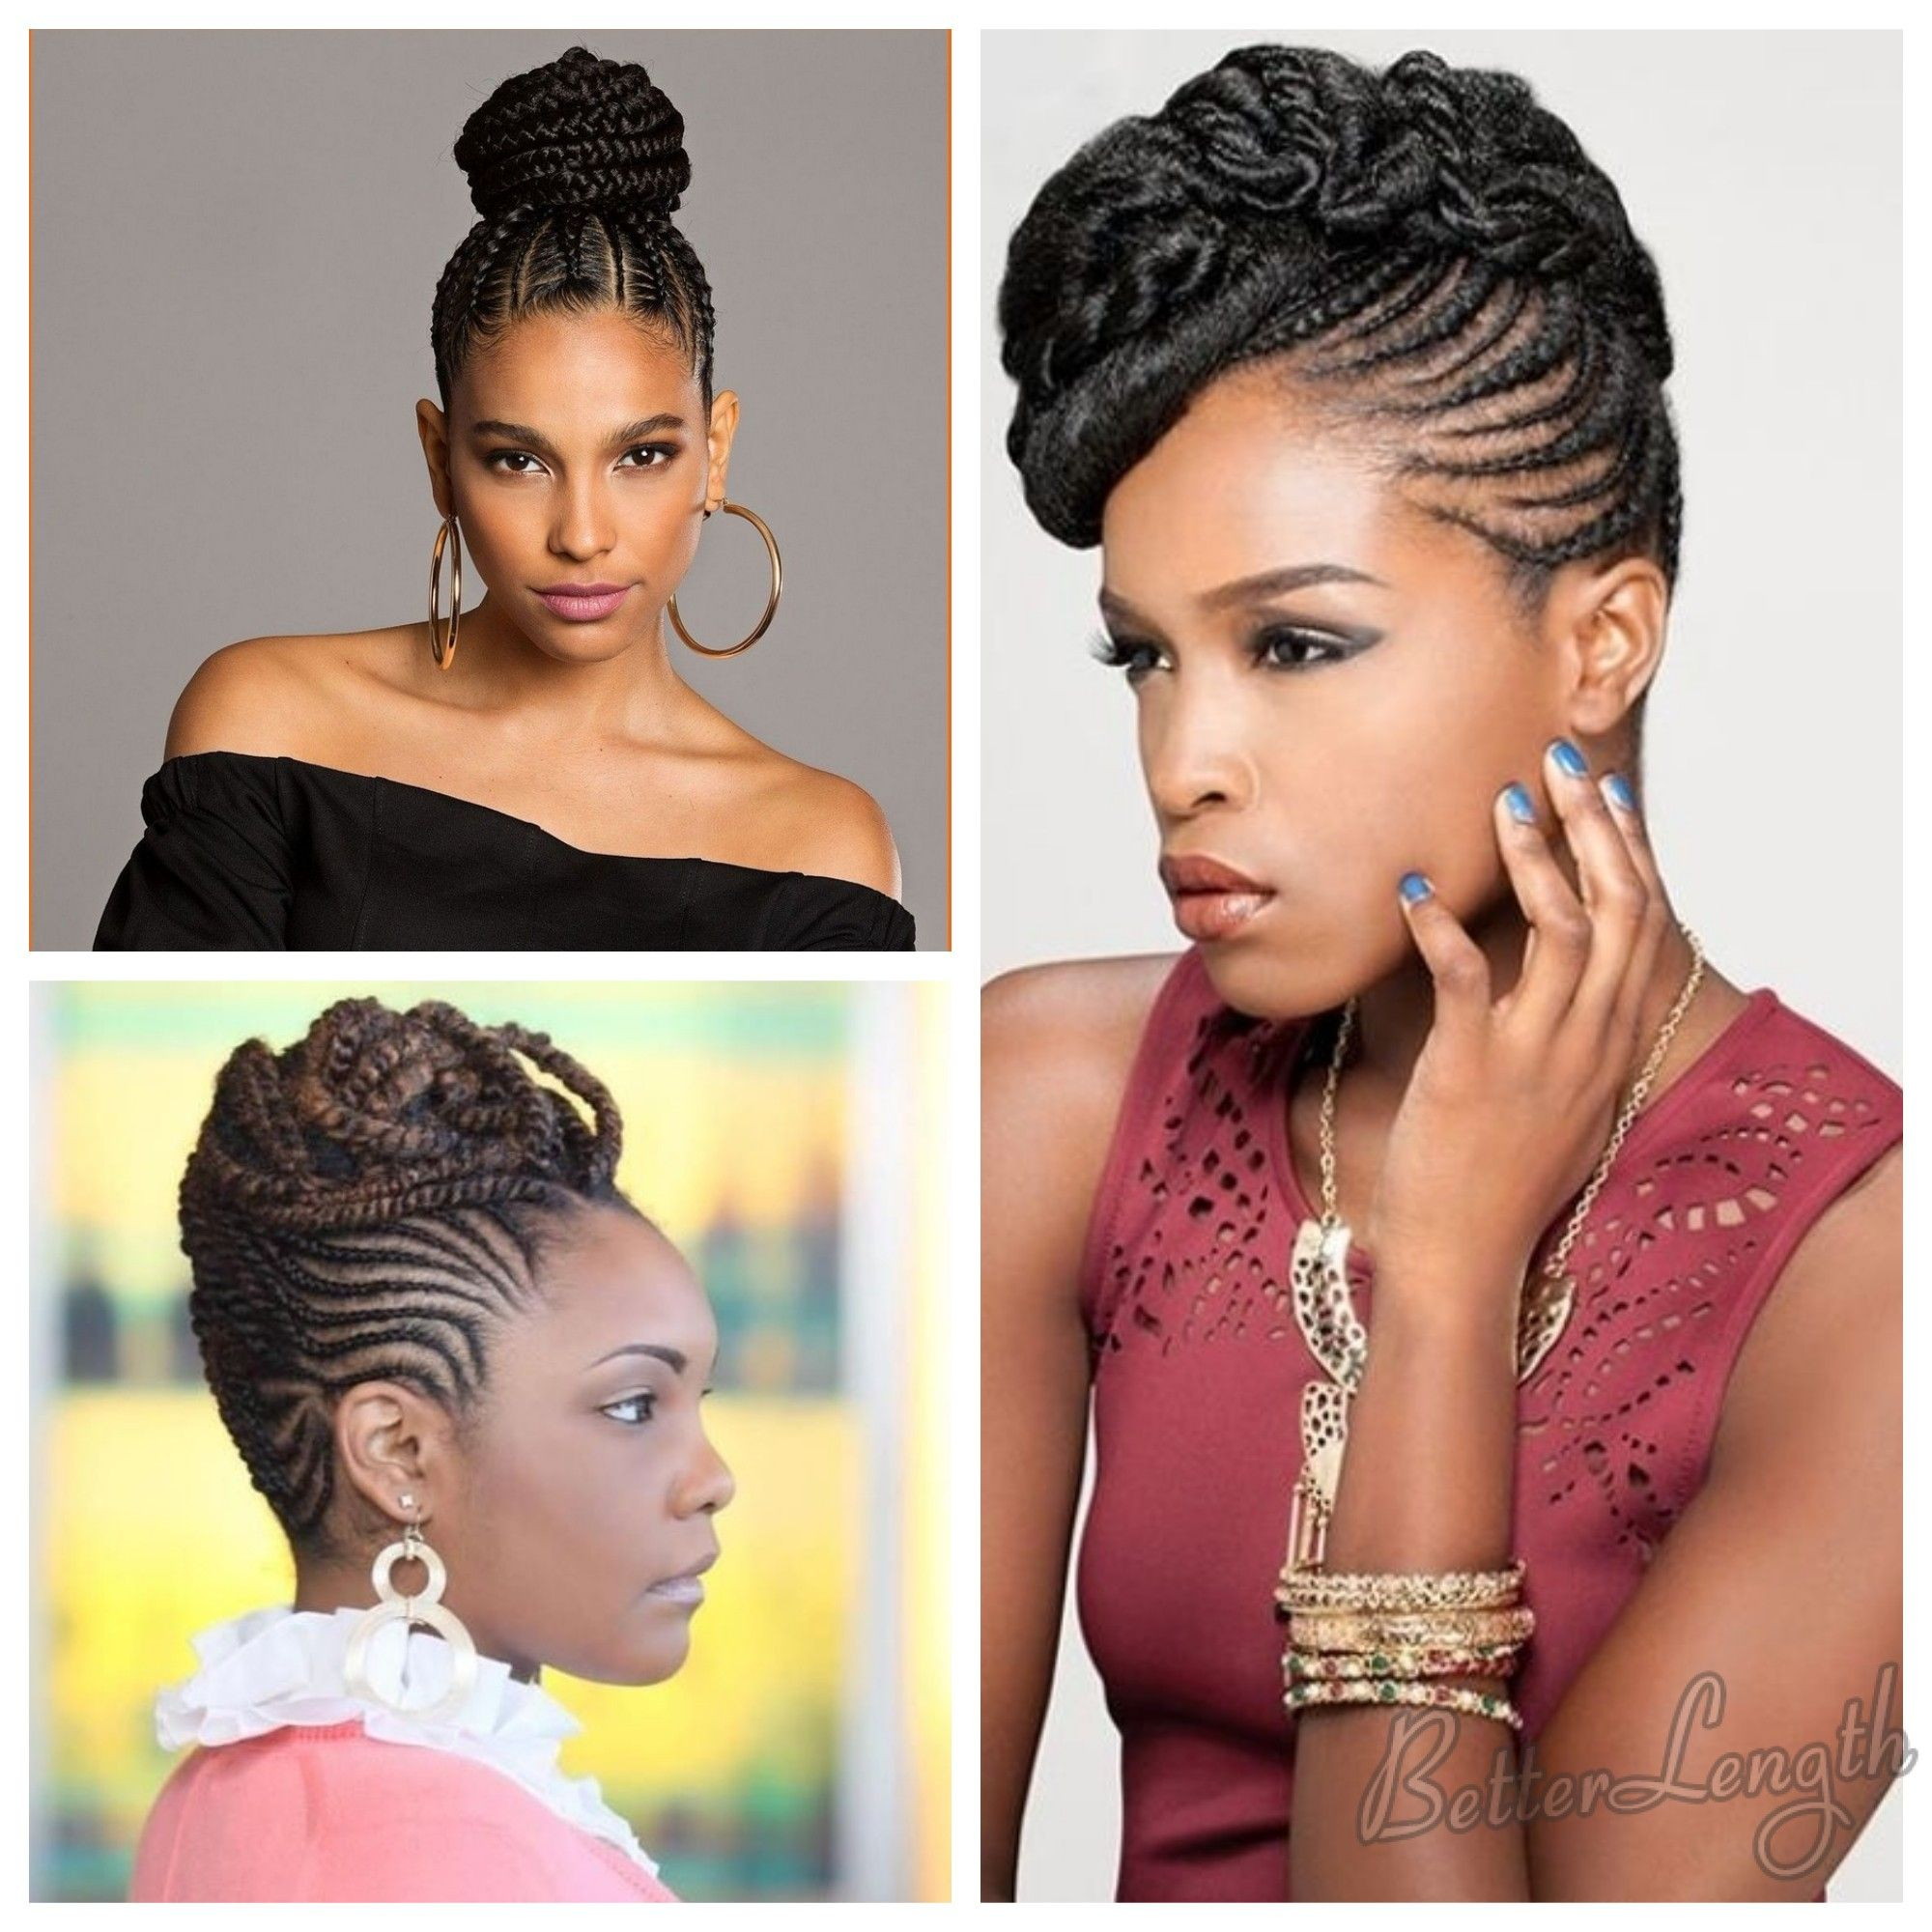 Best 7 Summer Hairstyles for Black Women 2018 | Braided hairstyles updo, Summer hairstyles, Cool ...